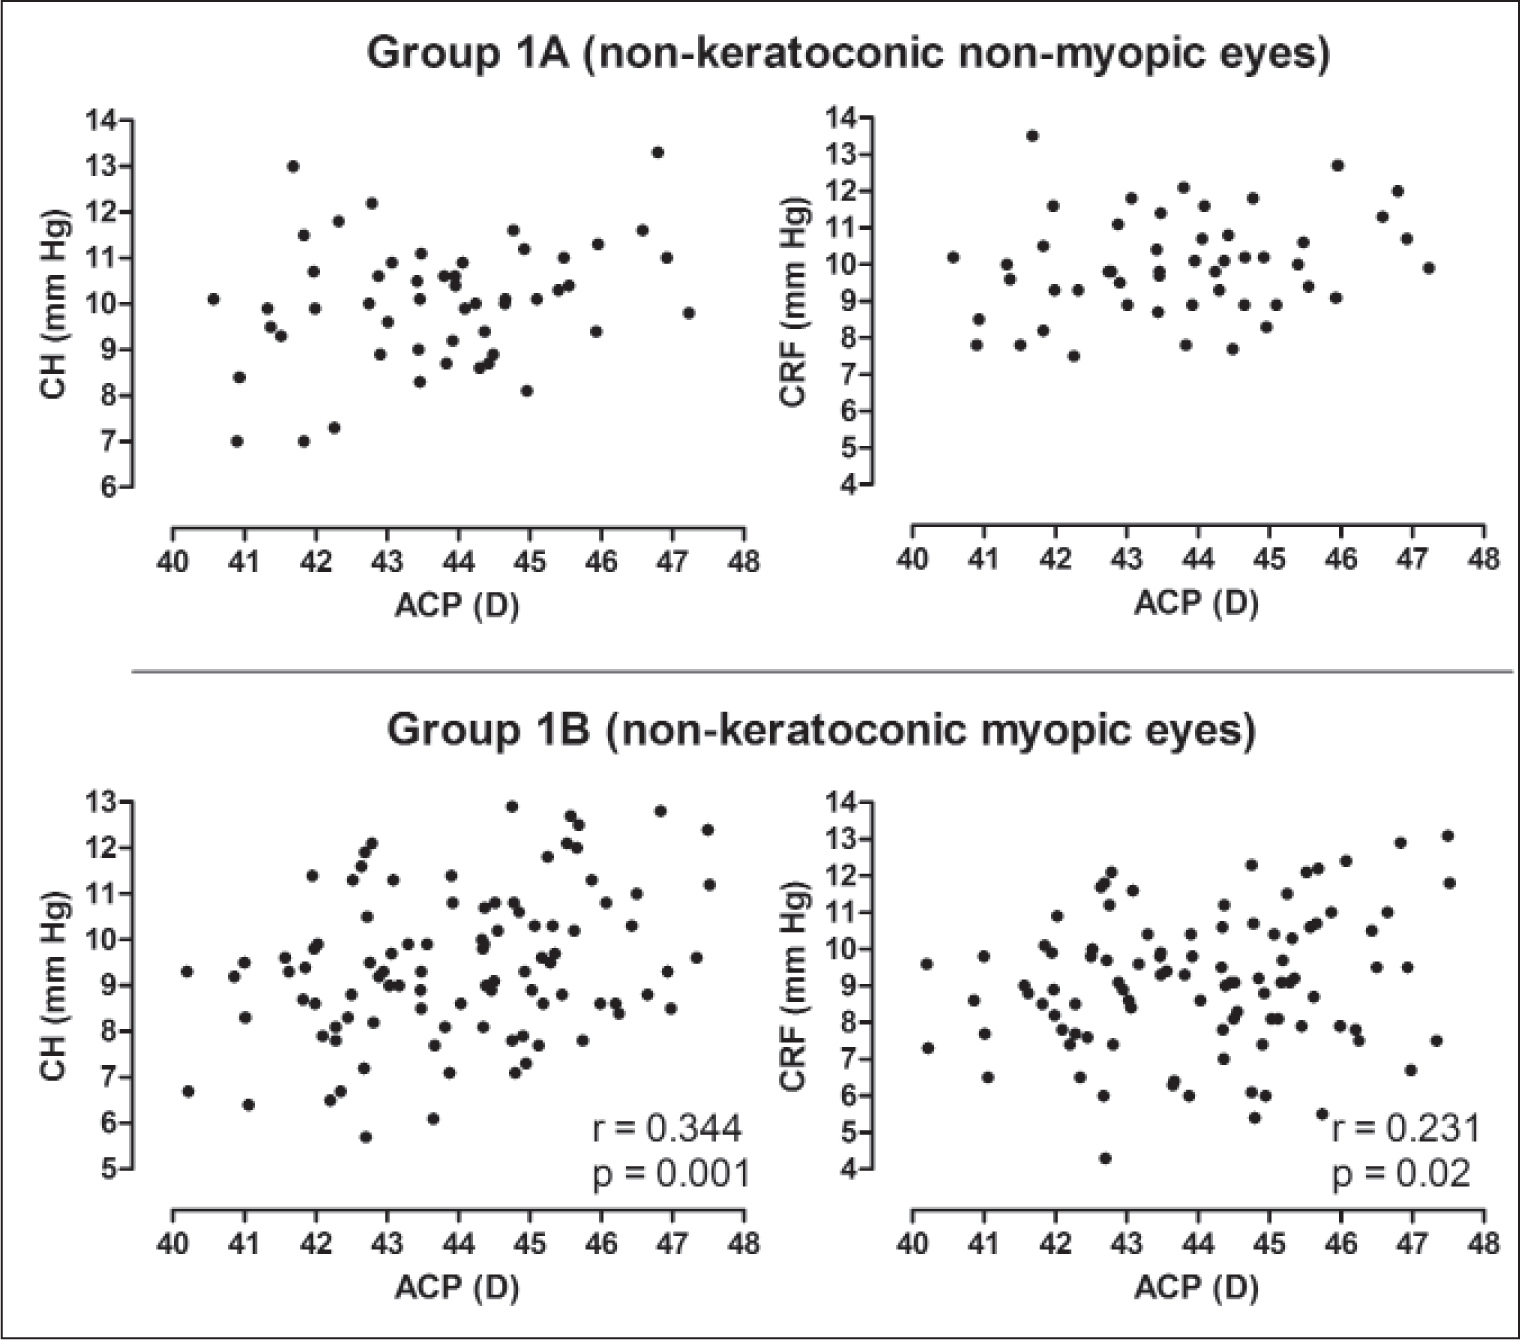 Correlation between corneal power and biomechanical indices in non-keratoconic eyes. Correlation graphs for corneal hysteresis and resistance factor and average corneal power are shown for dataset 1 eyes. Pearson's r correlation and P values are shown where statistically significant. CH = corneal hysteresis; CRF = corneal resistance factor; ACP = average corneal power